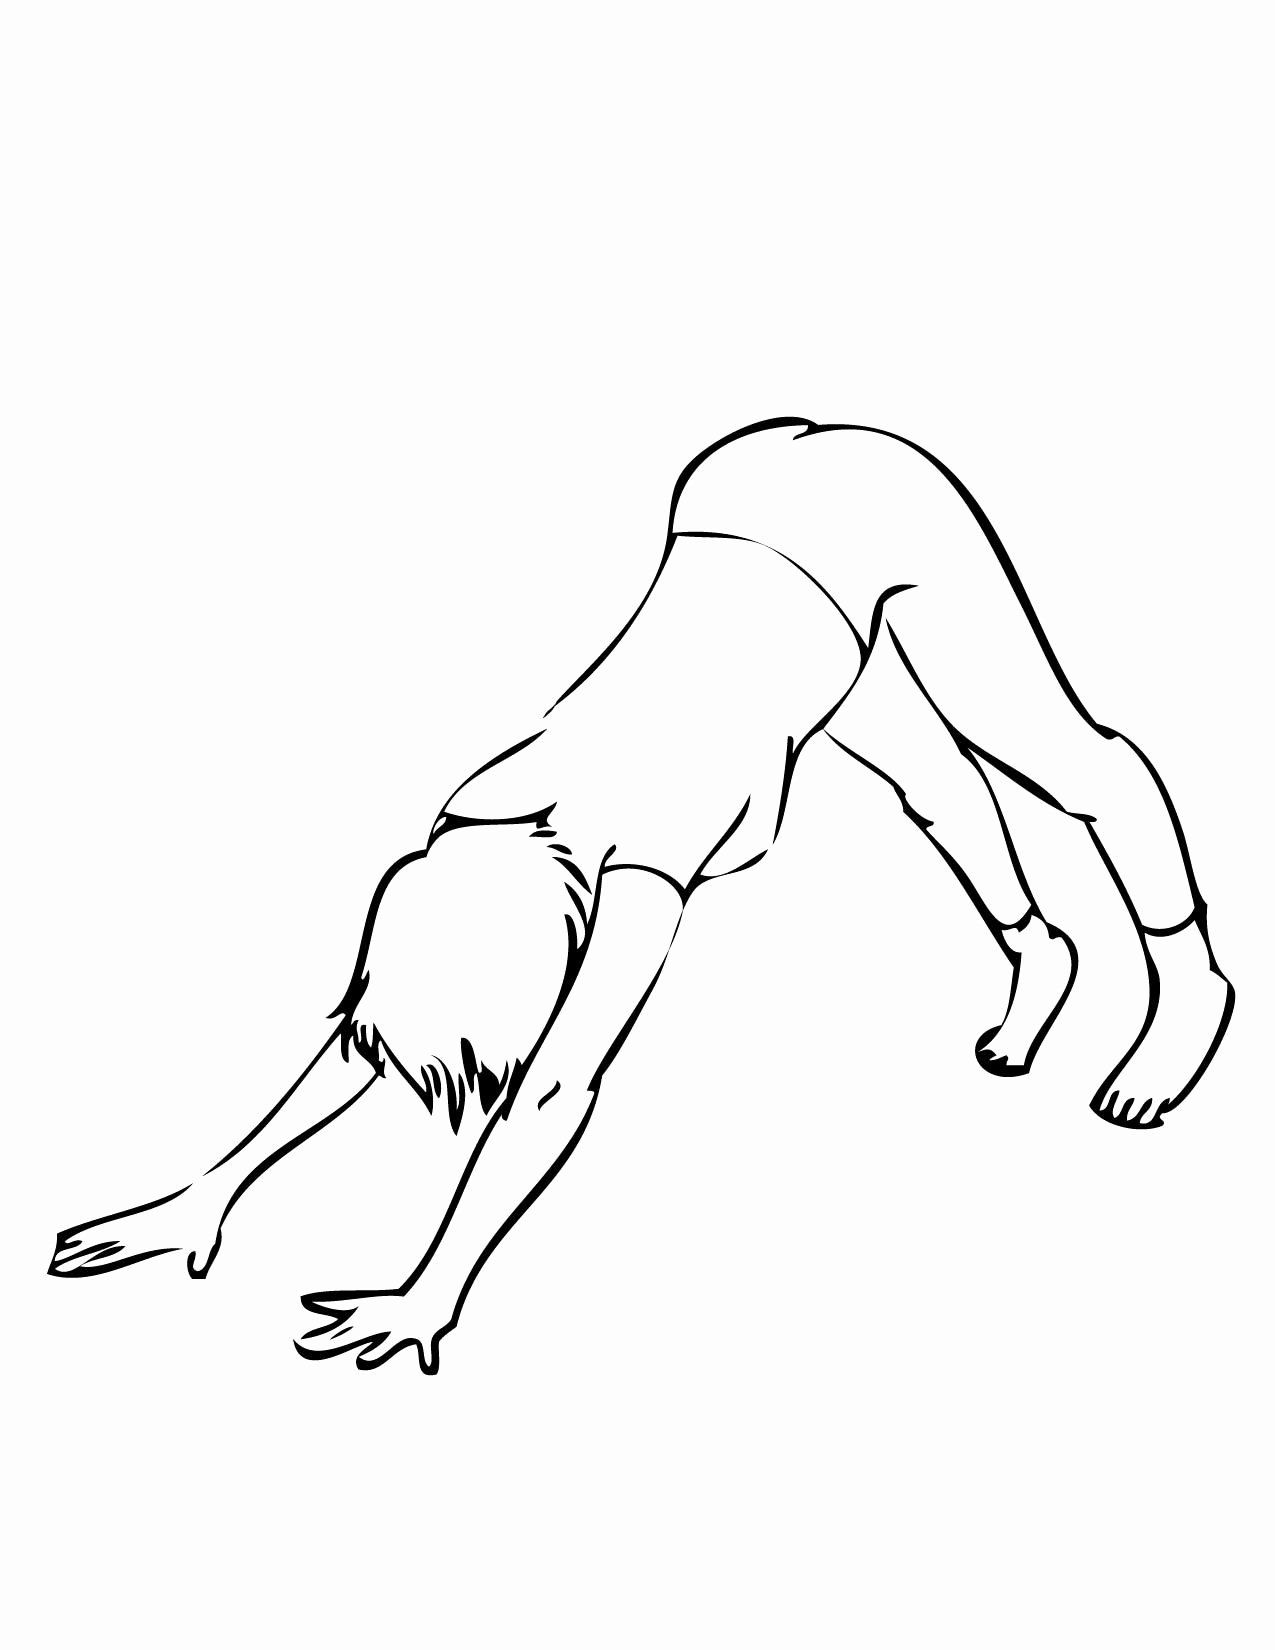 Yoga Coloring Pages To Print Fresh Free Printable Yoga Coloring Pages Coloring 365 Yoga For Kids Kids Yoga Poses Coloring Pages